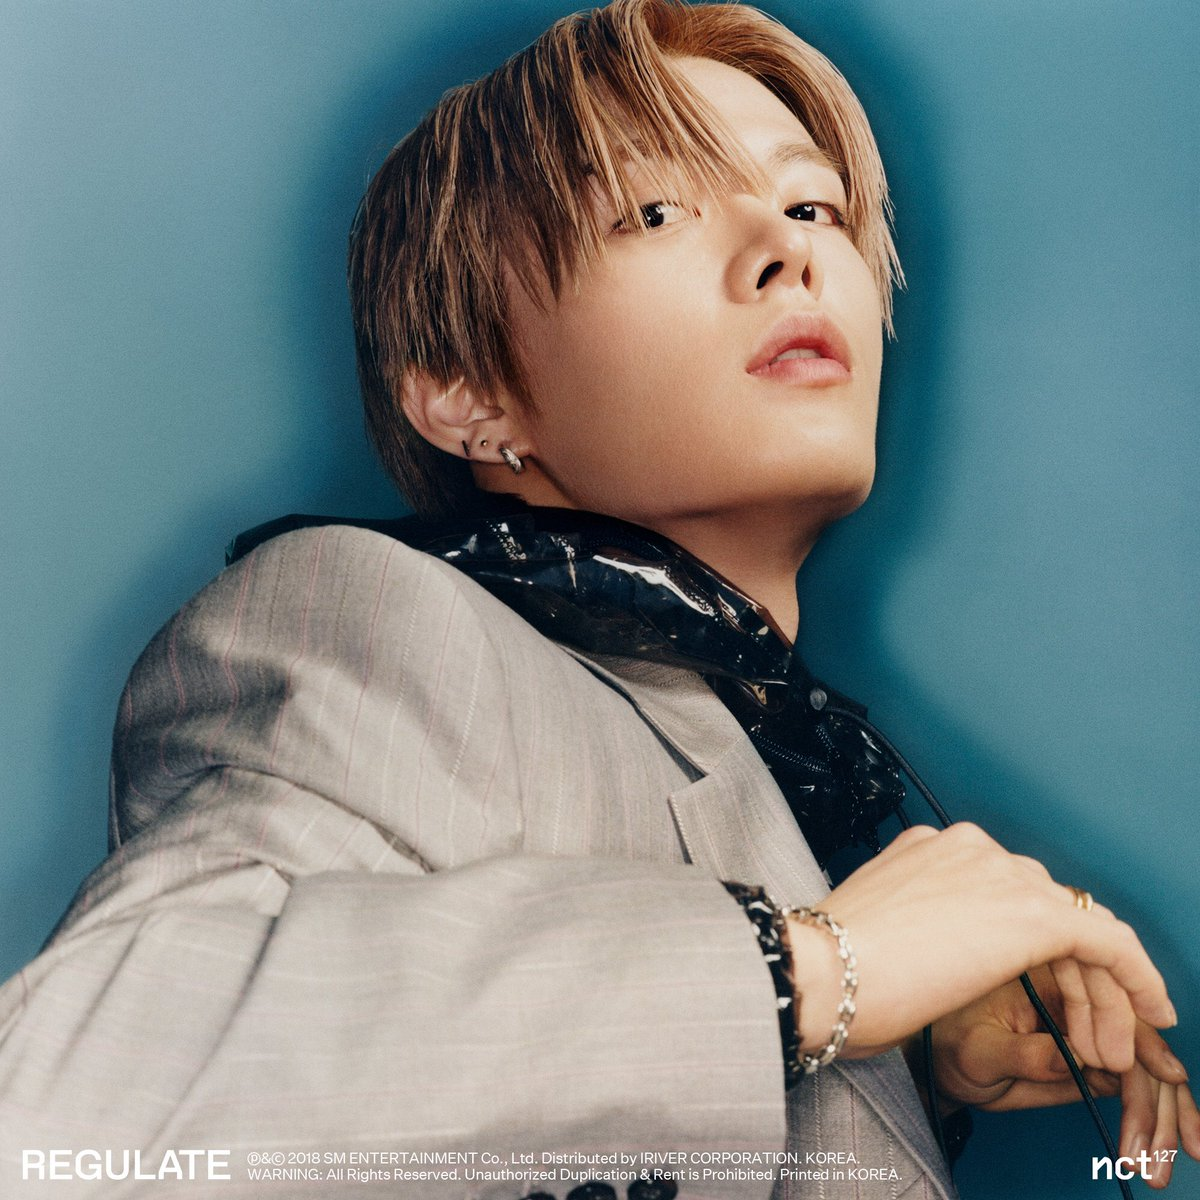 NCT 127 'Simon Says' ➫ 2018 11 23  #NCT127_SimonSays #SimonSays #NCT127 #NCT127_Regulate @NCTsmtown_127